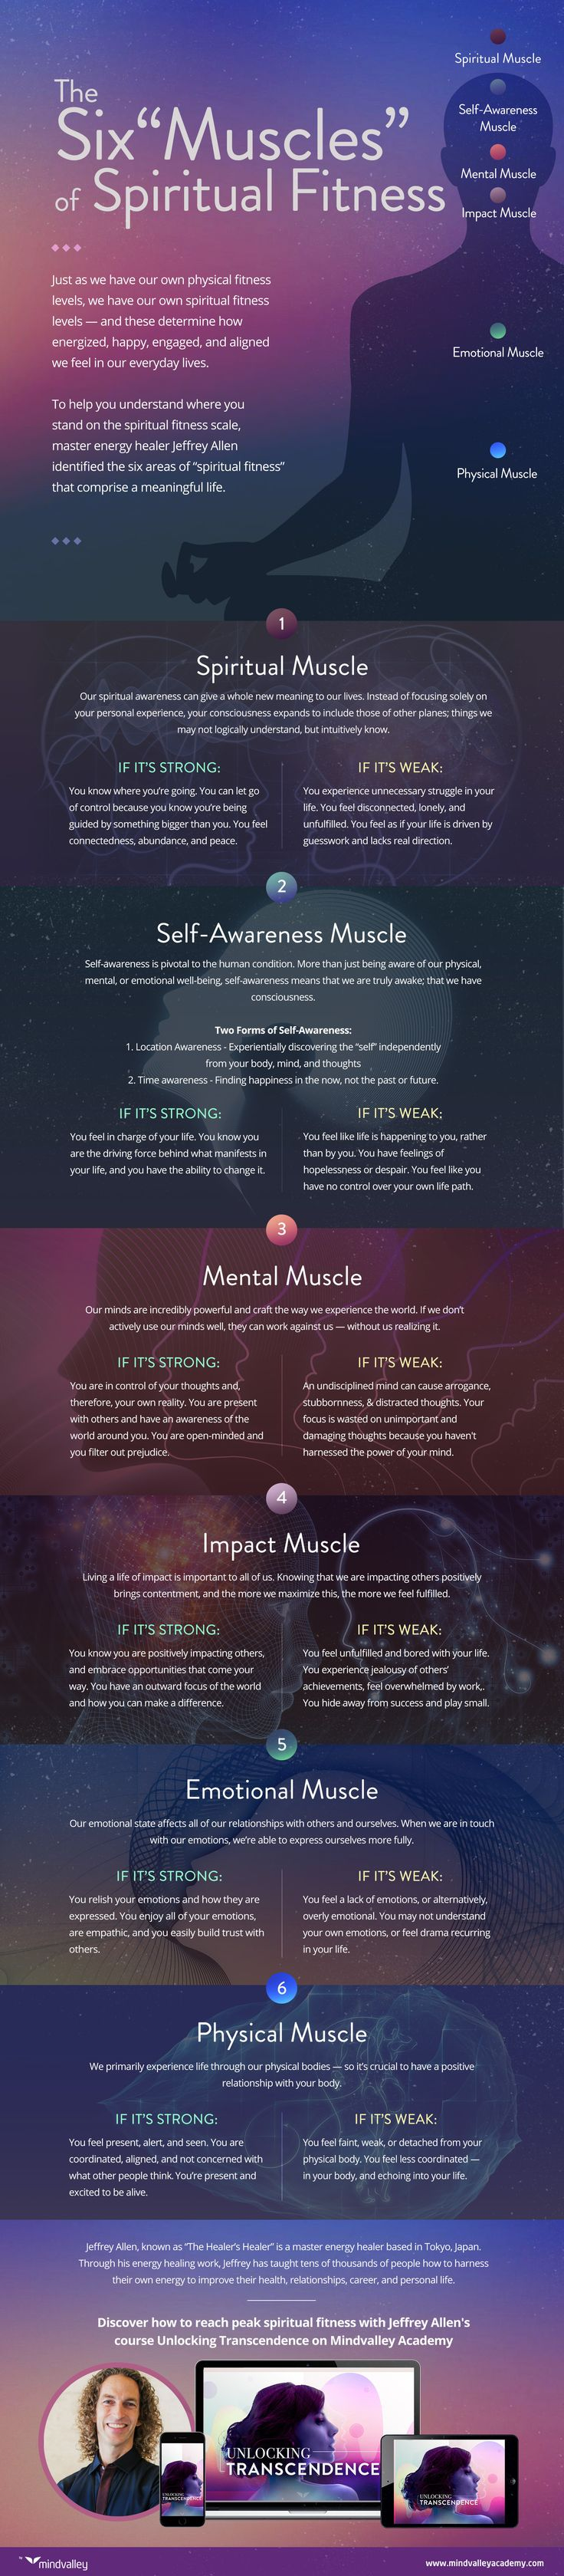 jeffrey allen 6 muscles of spiritual fitness infographic